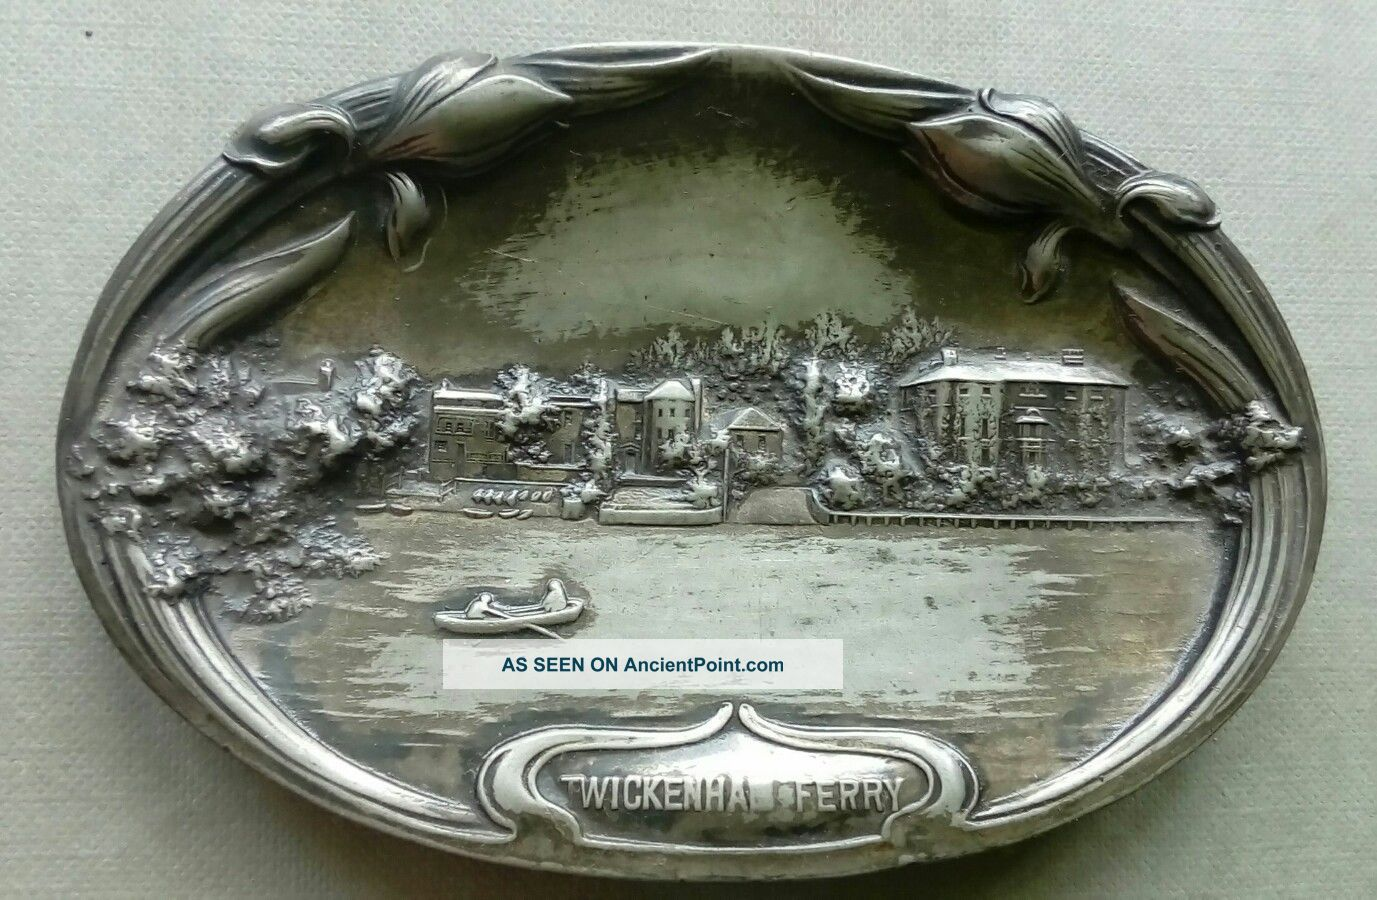 Pewter Card Tray Art Noveau Twickenham Ferry Thames C1900 Middlesex History Art Nouveau photo